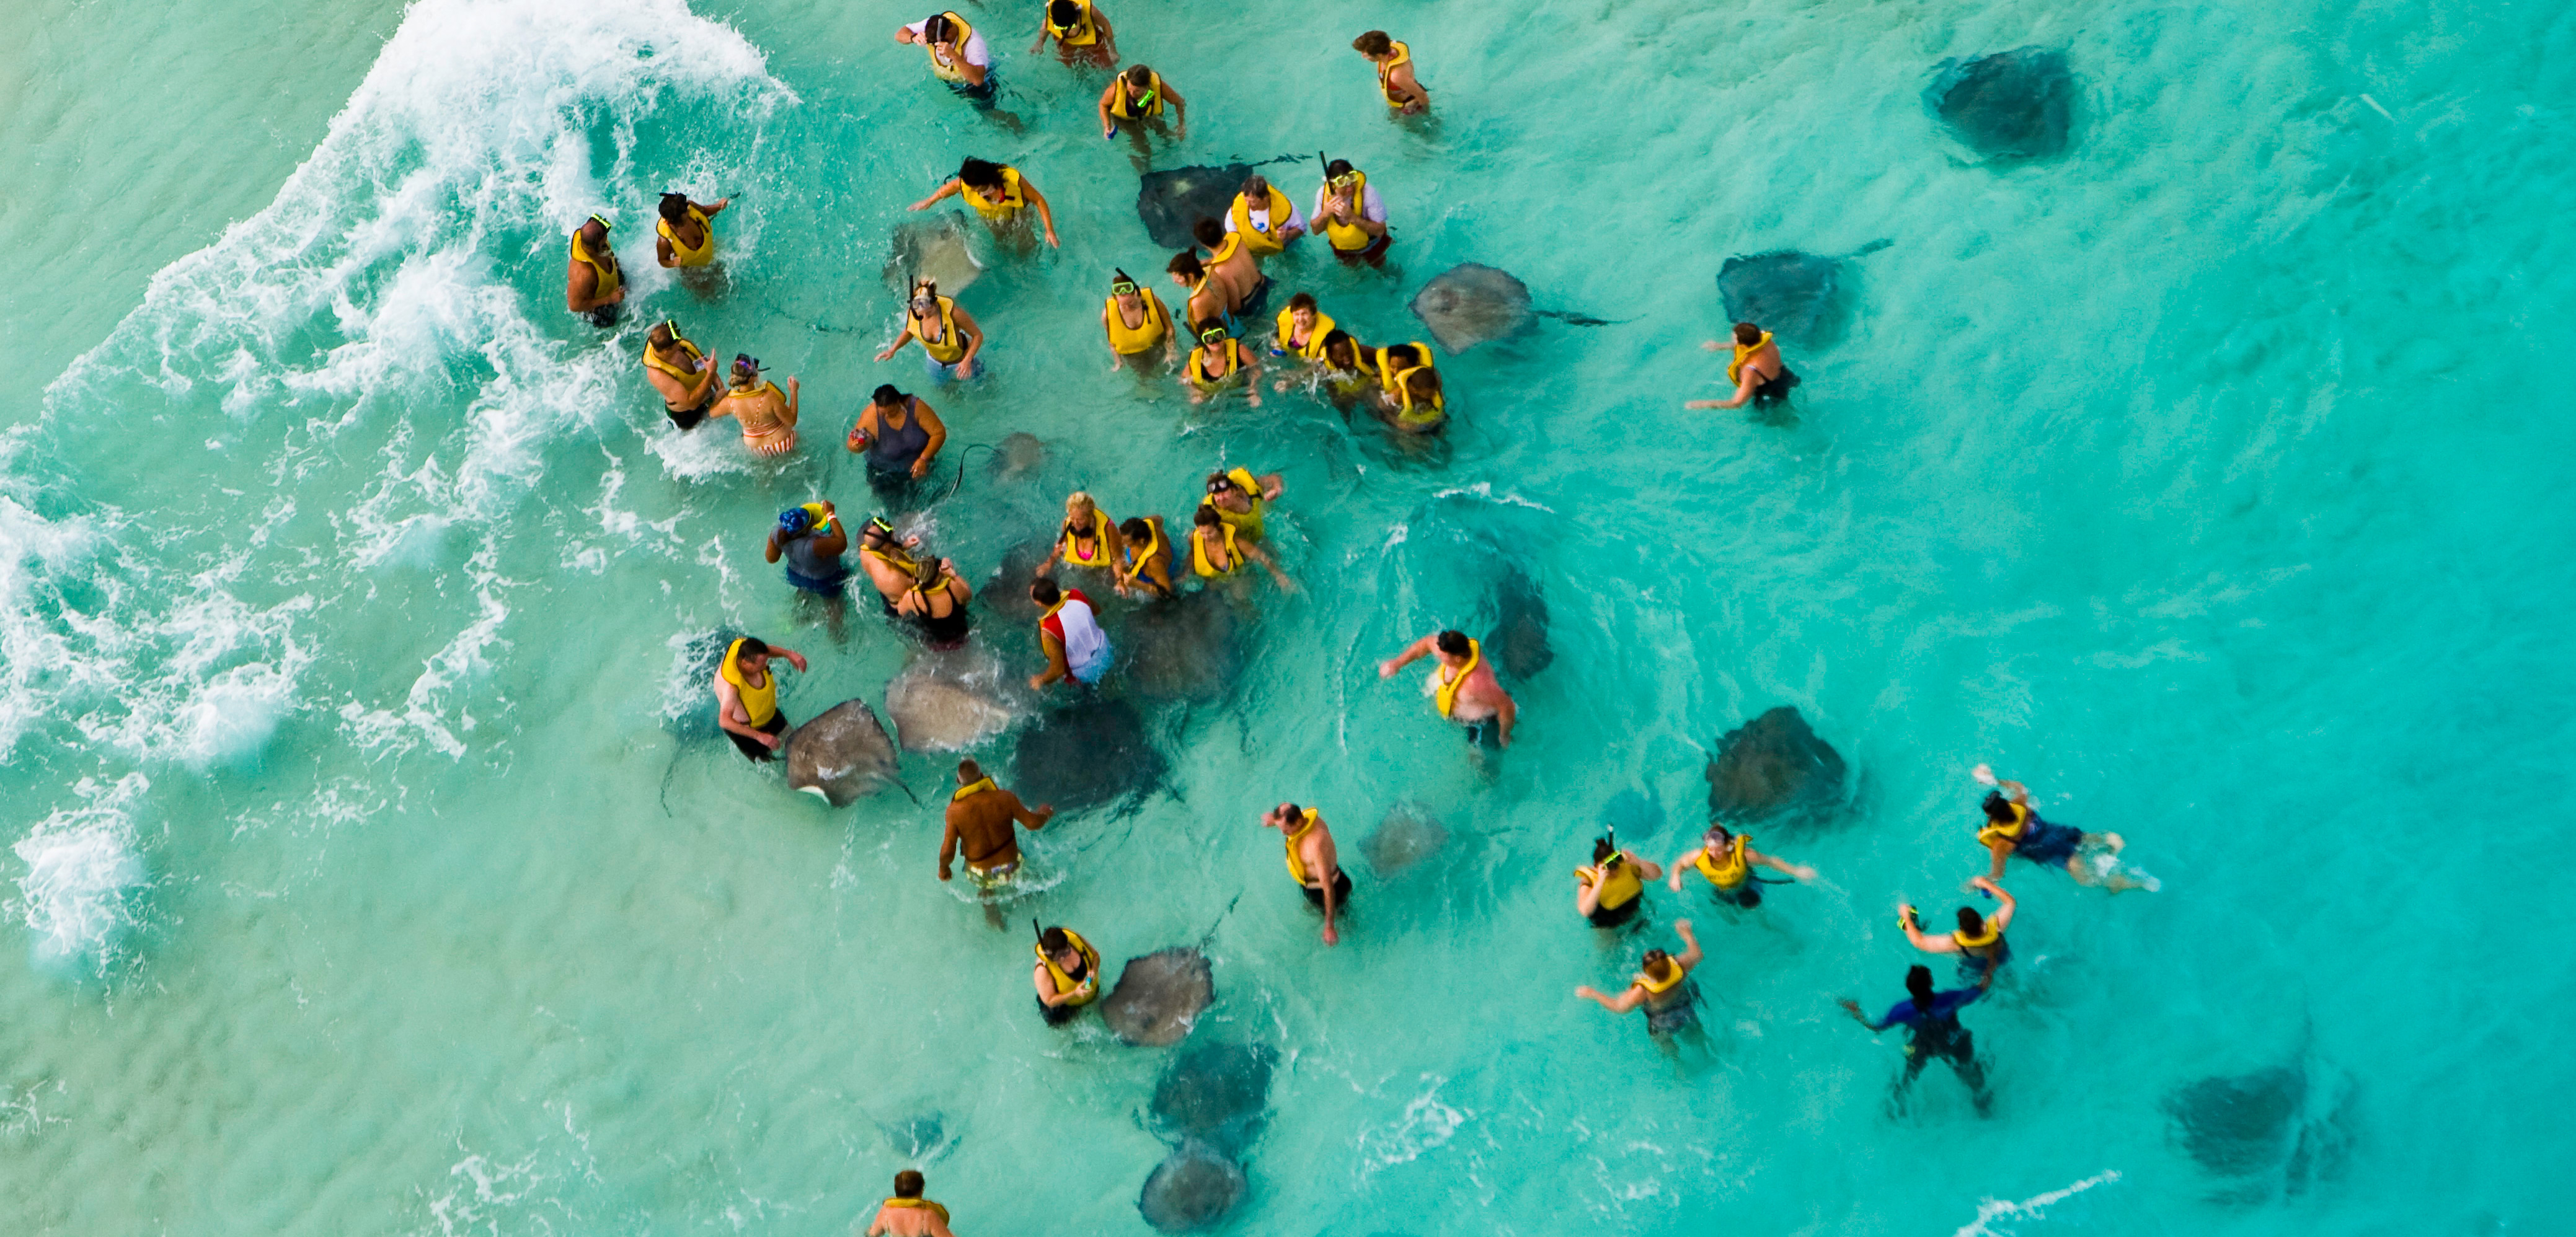 Nearly 800,000 people feed stingrays off Grand Cayman Island each year. Photo by Laurie Chamberlain/Corbis